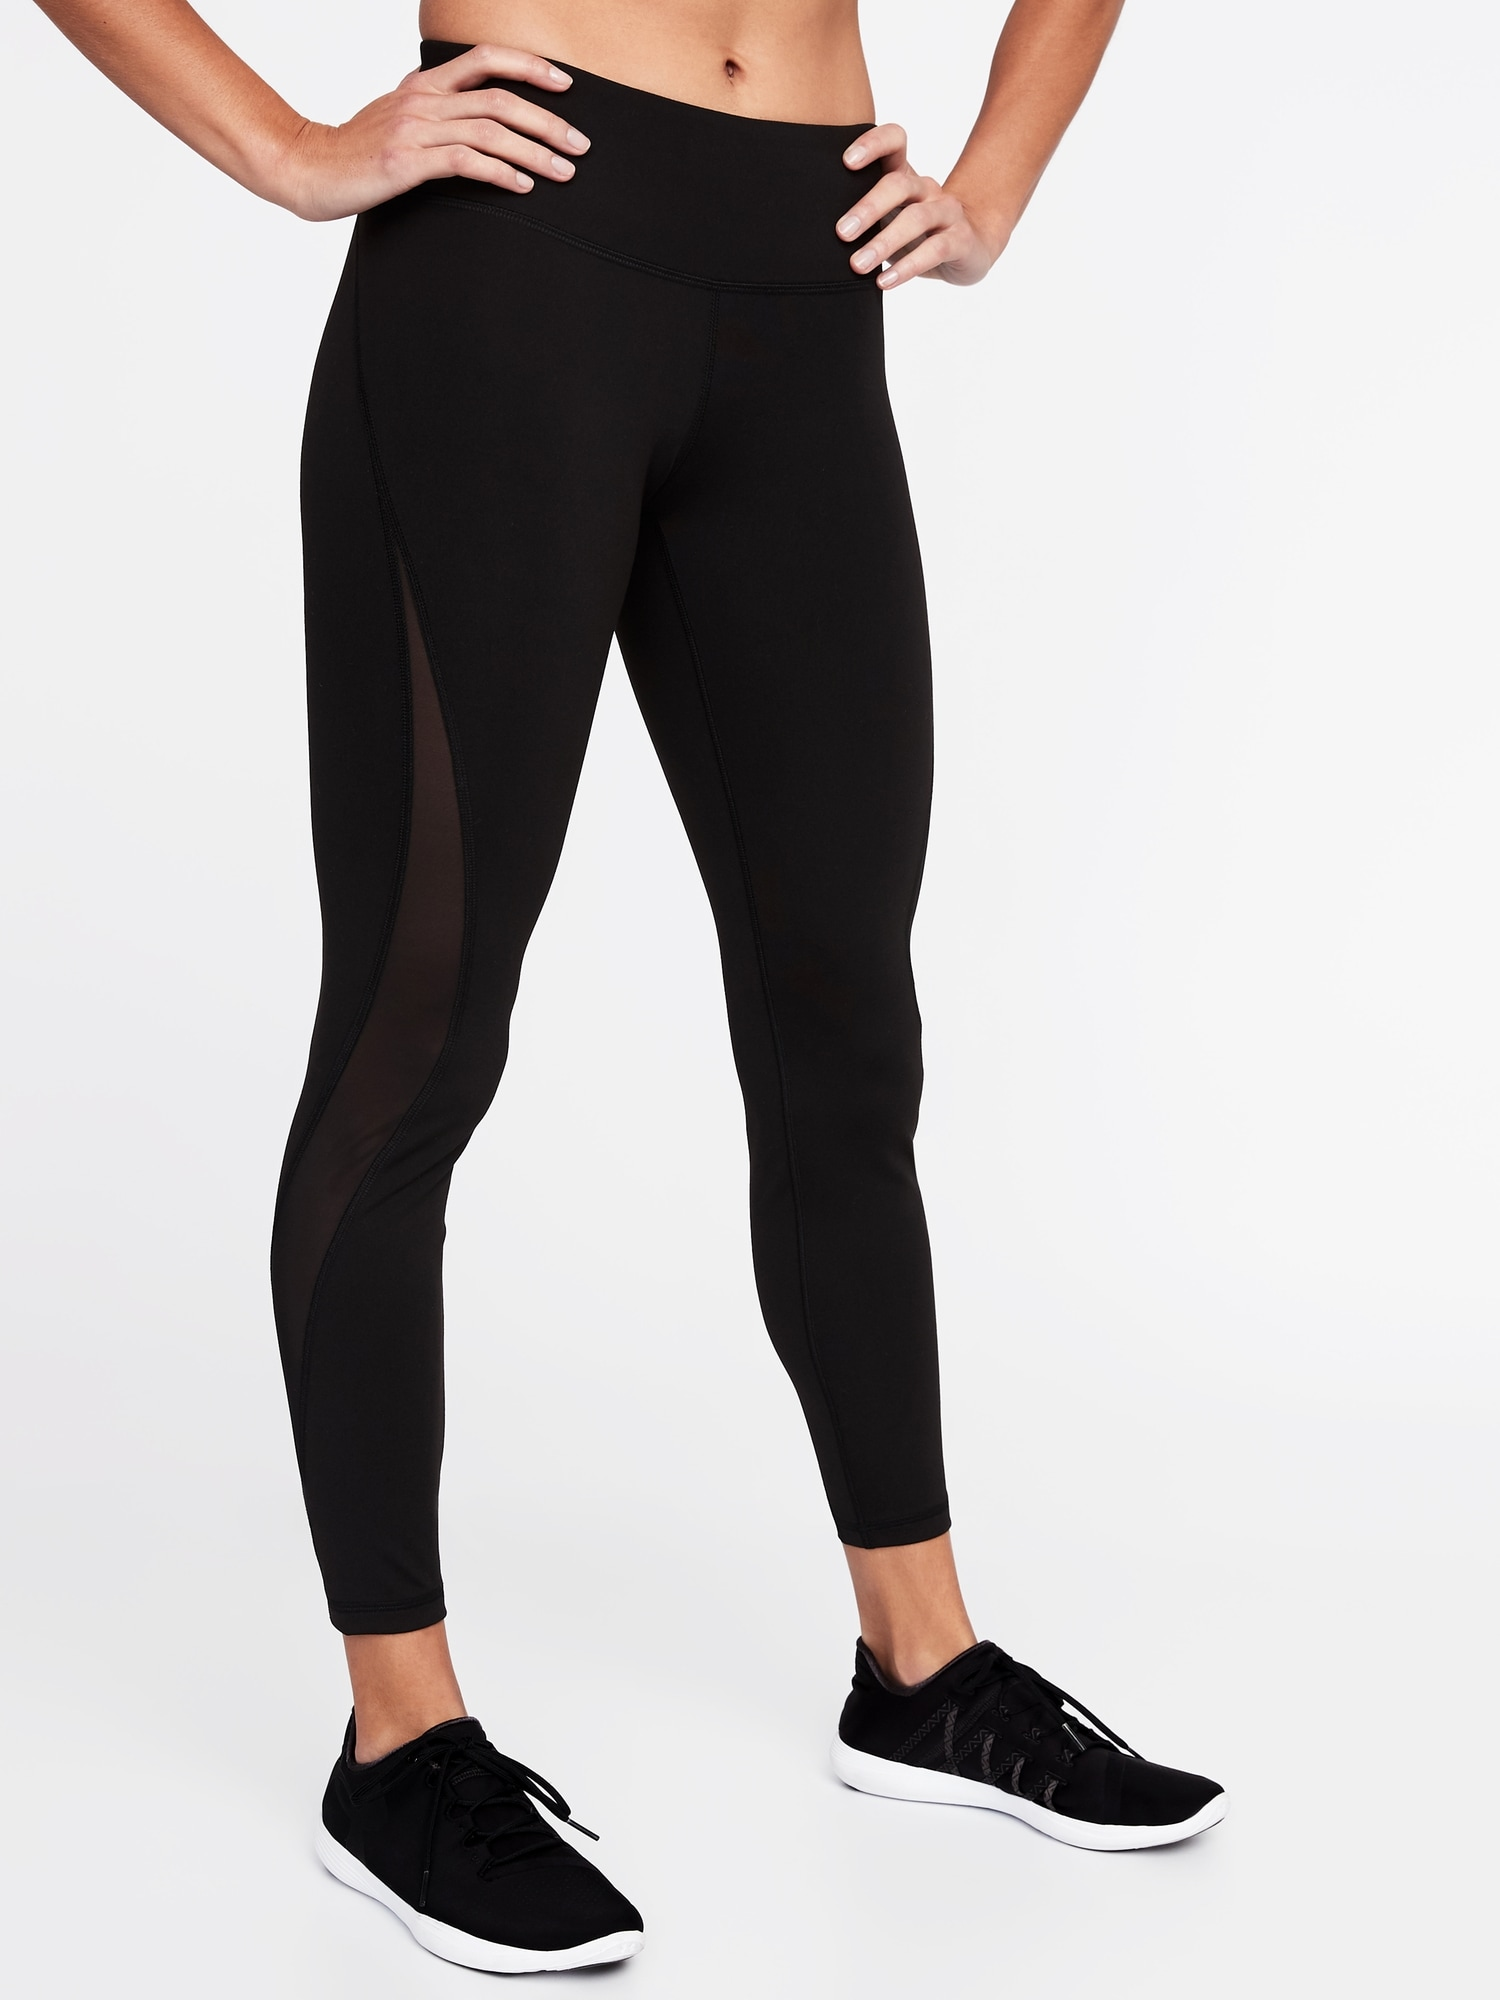 04a4ae1a78 Mid-Rise Elevate 7/8-Length Mesh-Panel Compression Leggings for Women